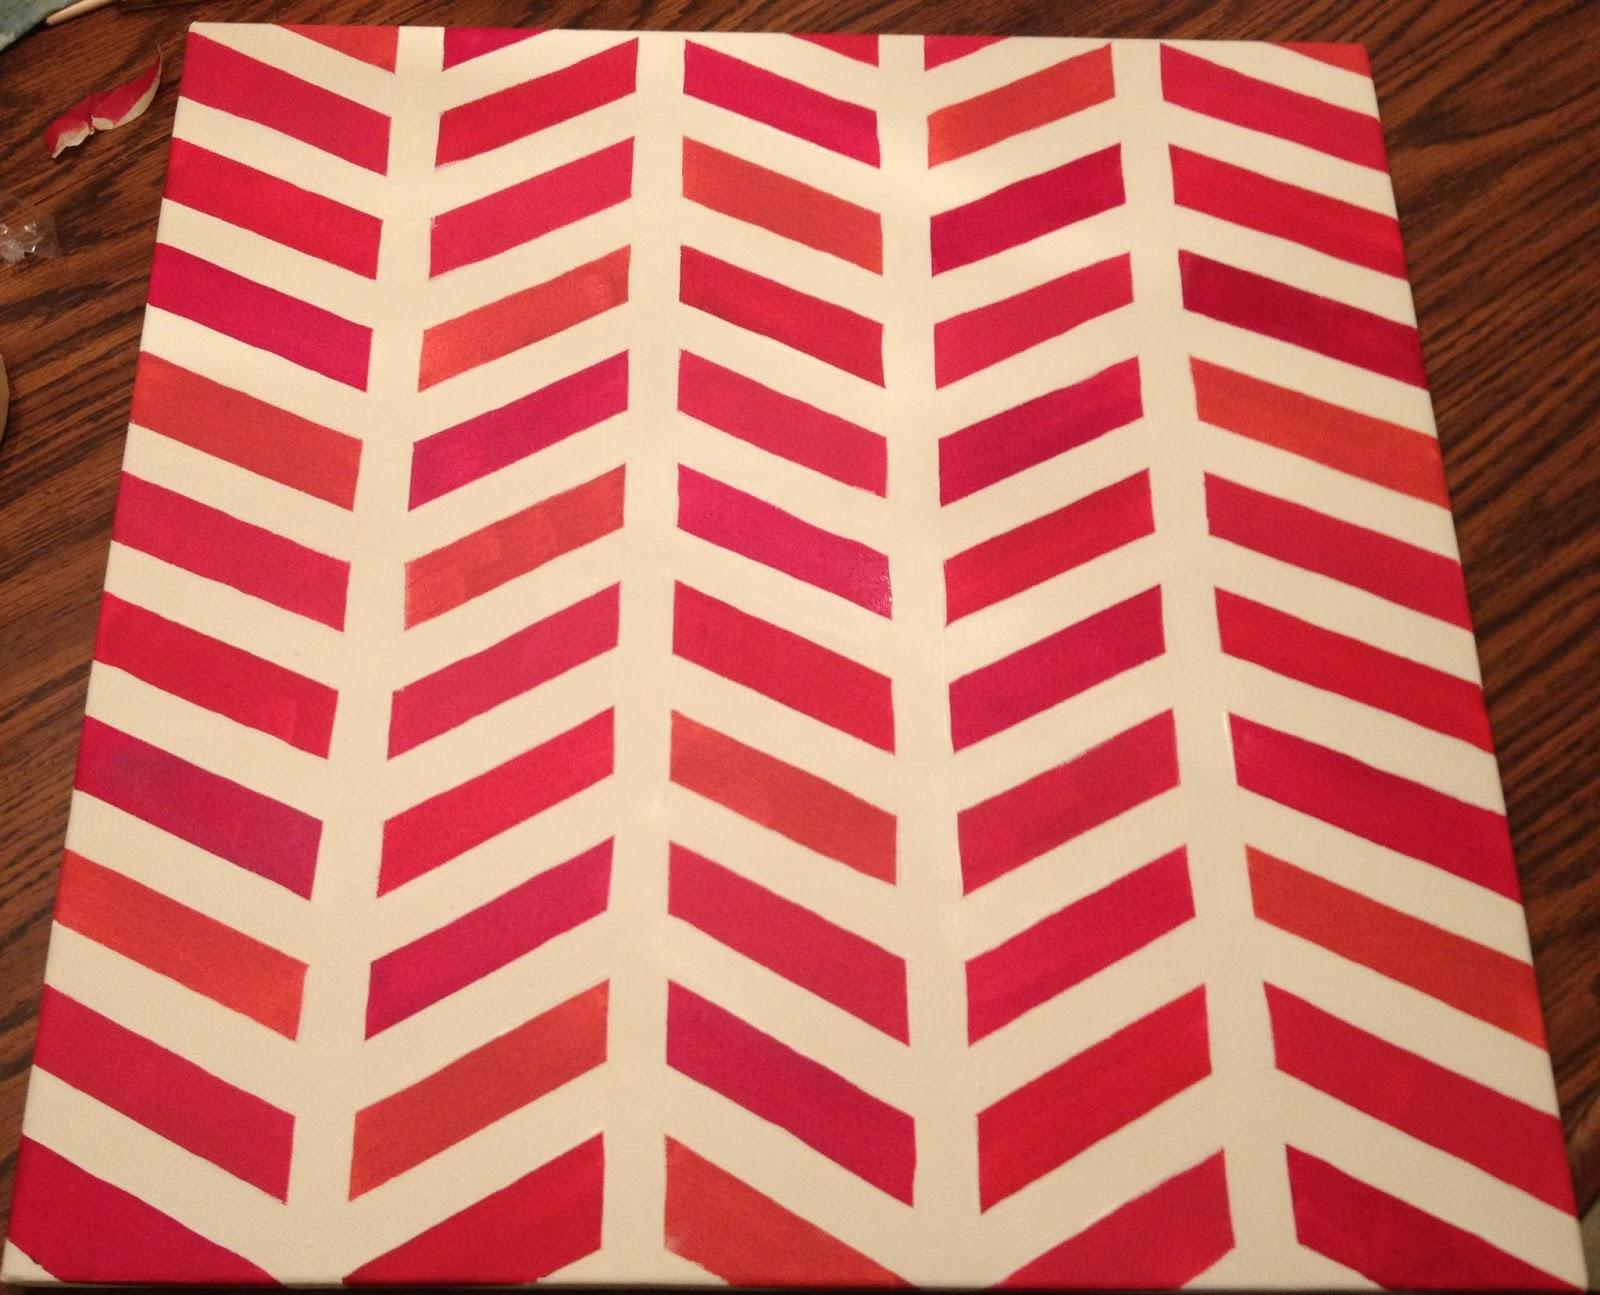 Pieces of chevron painting